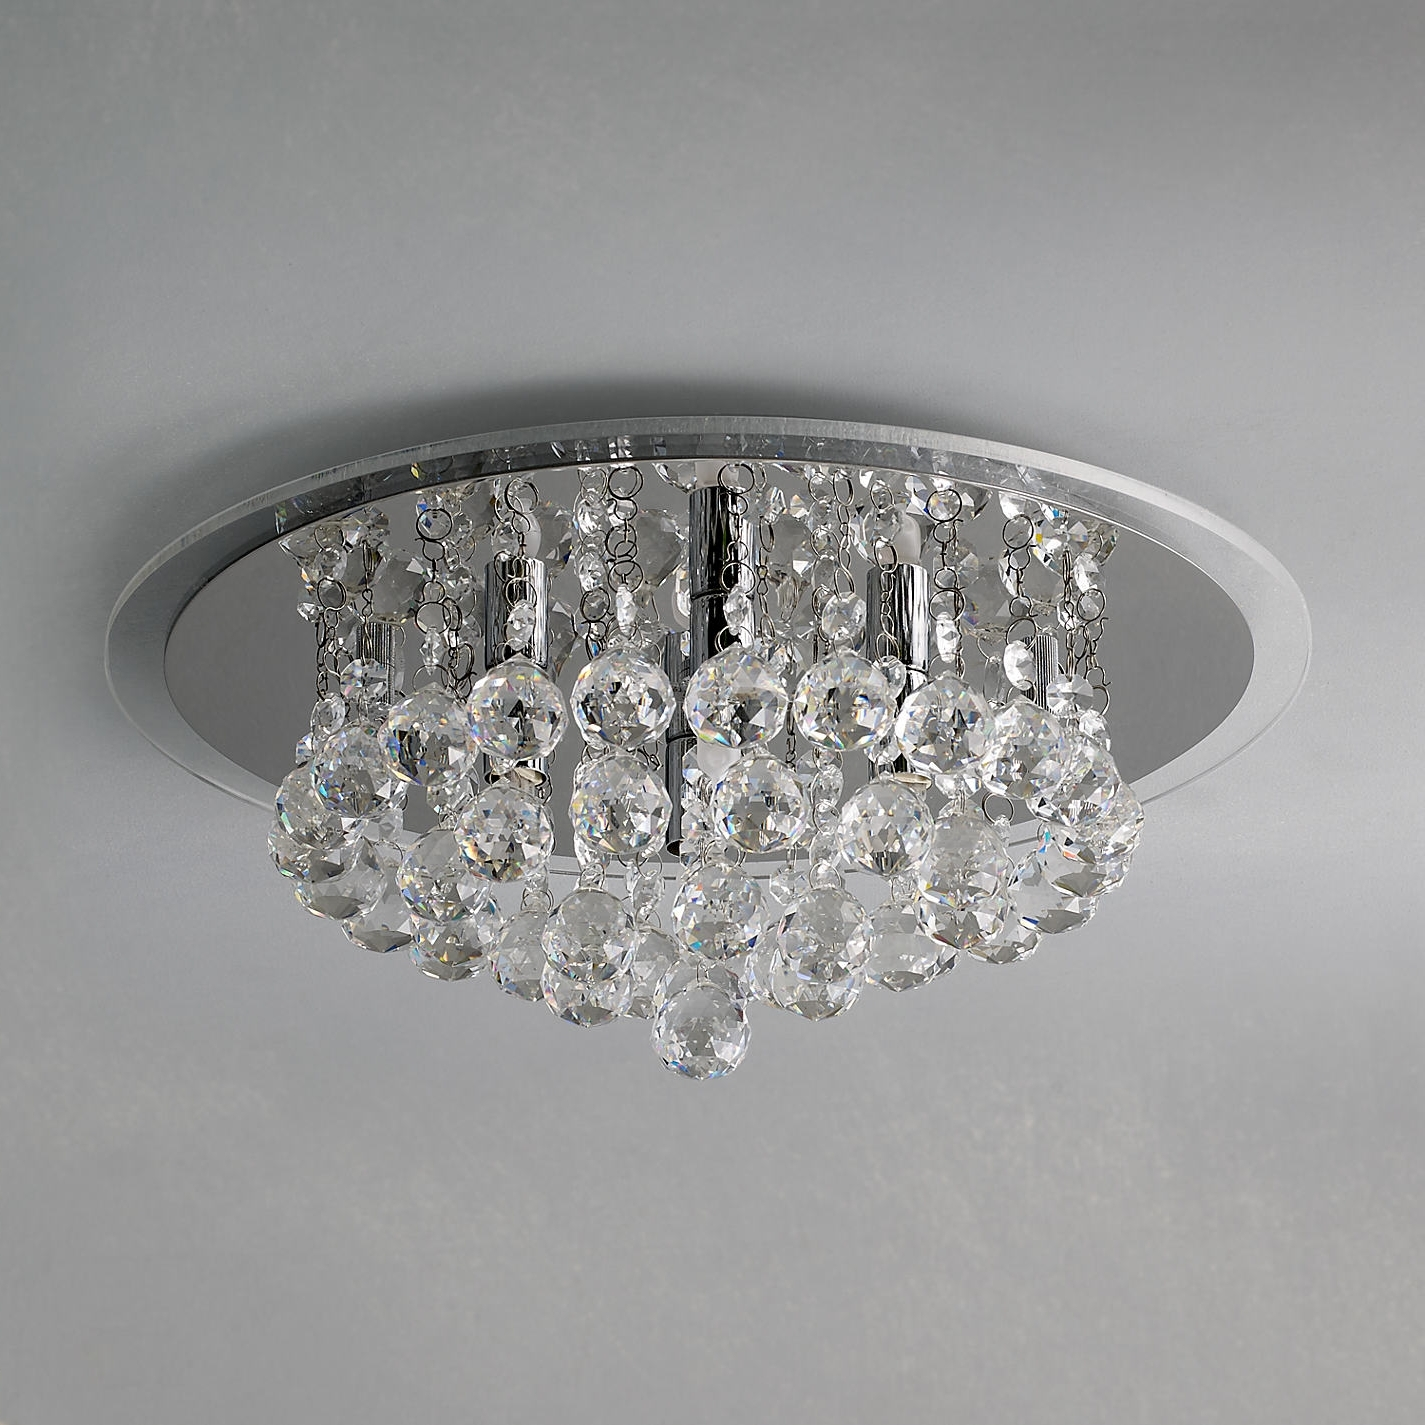 Flush Chandelier Ceiling Lights With Regard To Most Recently Released John Lewis Belinda Flush Ceiling Light Chrome Crystal Ceiling Lights (View 11 of 20)